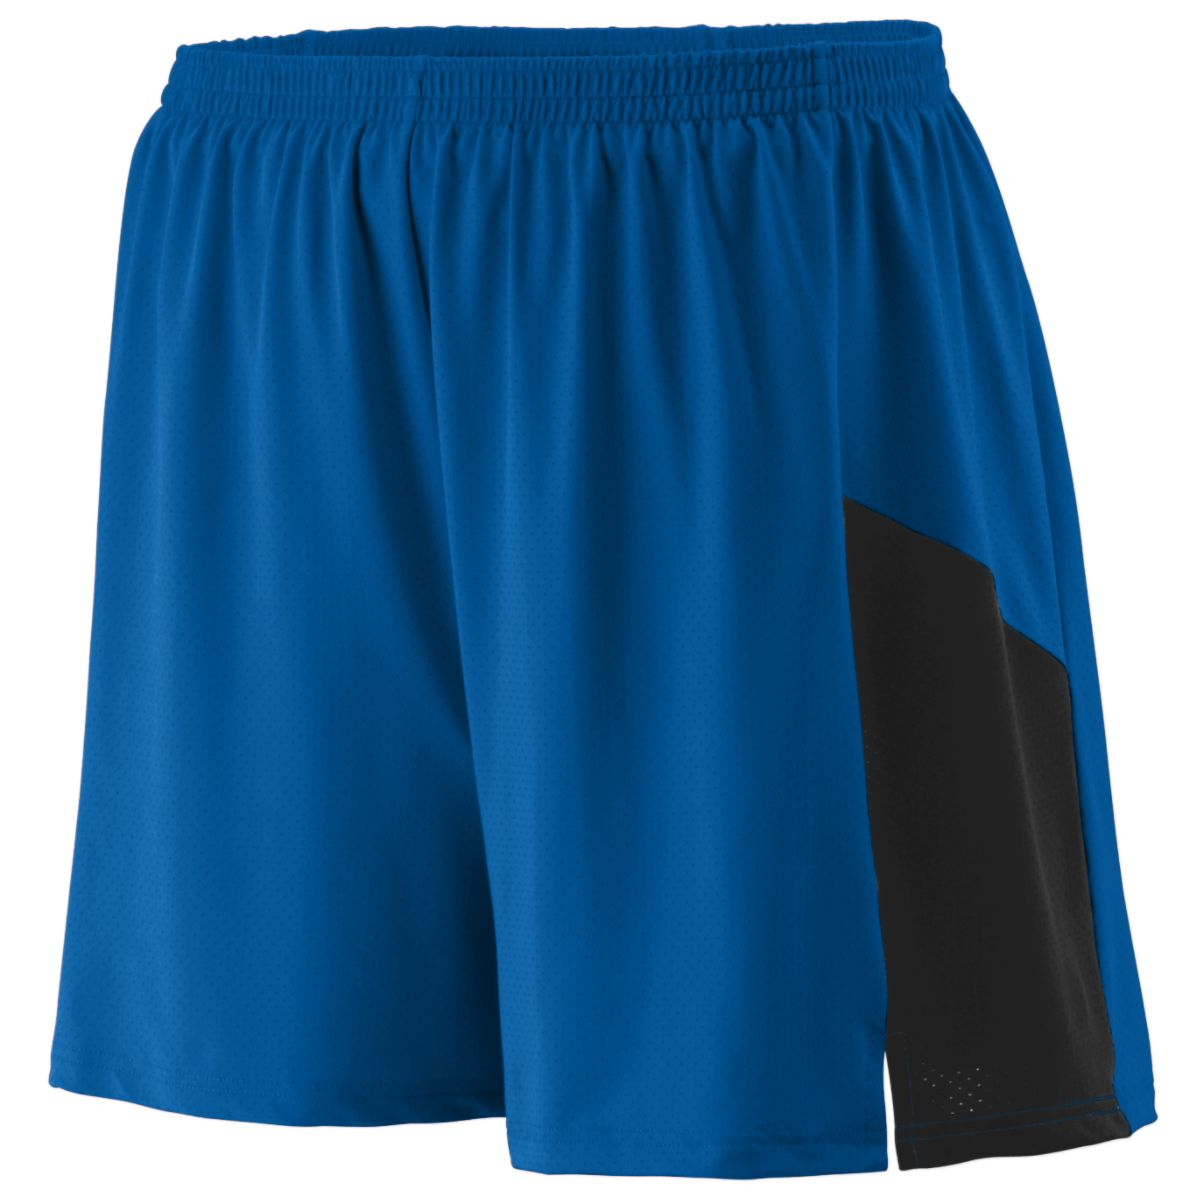 Augusta Sprint Short Roy/Blk S - image 1 of 1